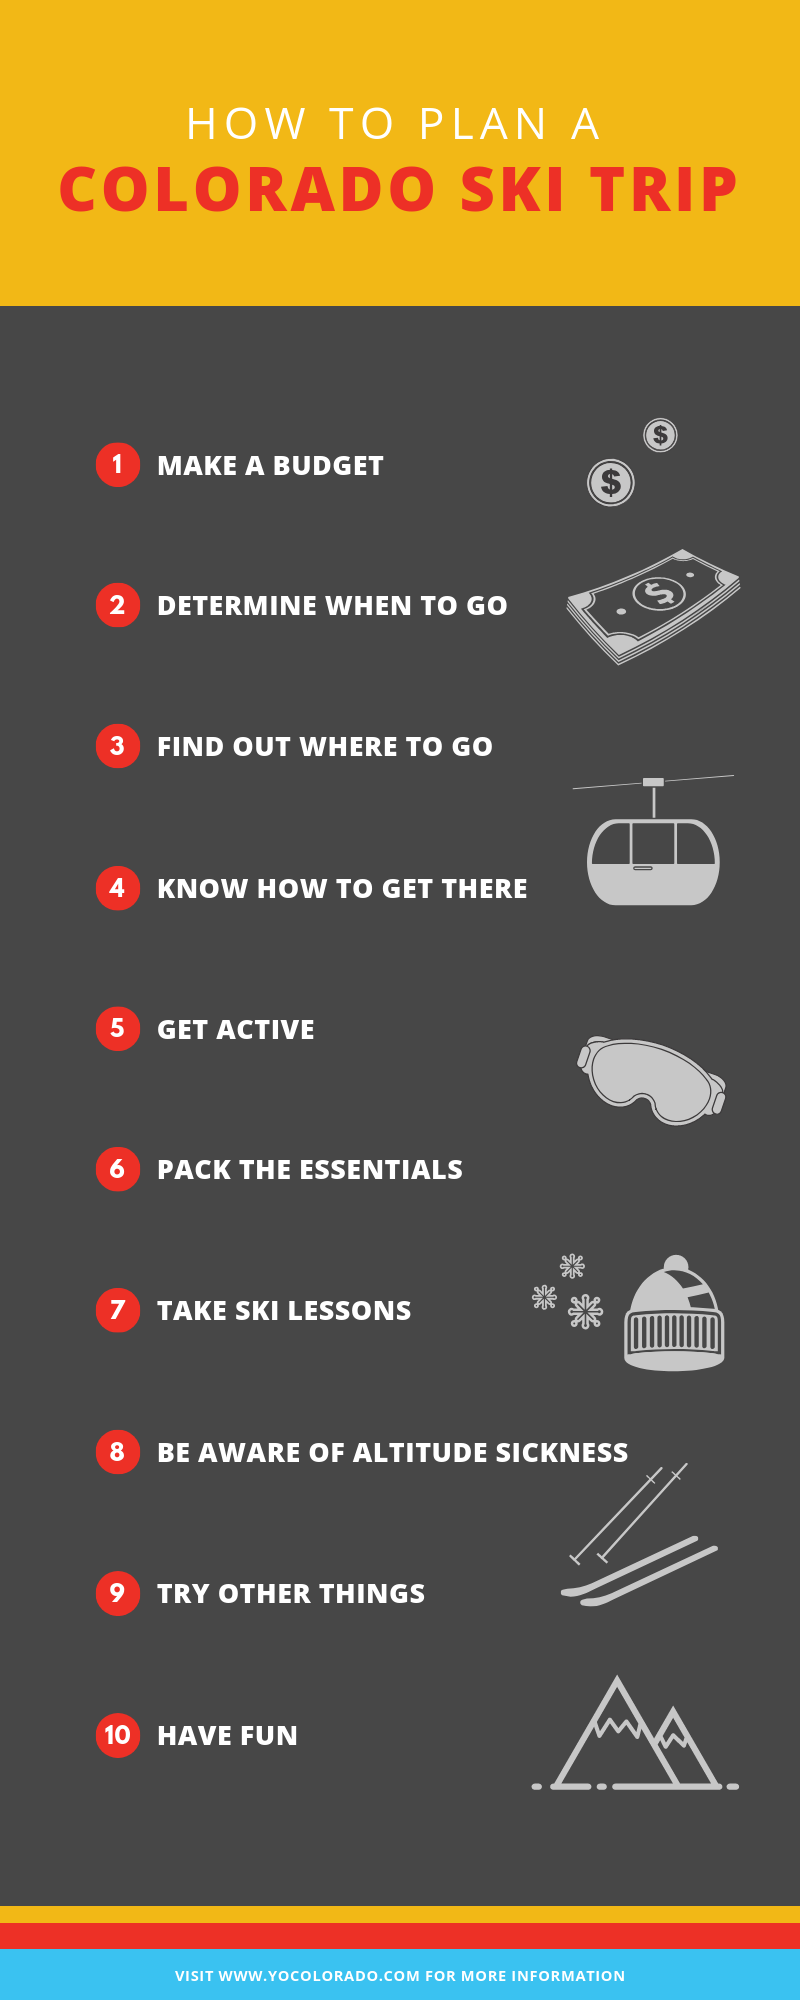 How to Plan a Colorado Ski Trip infographic